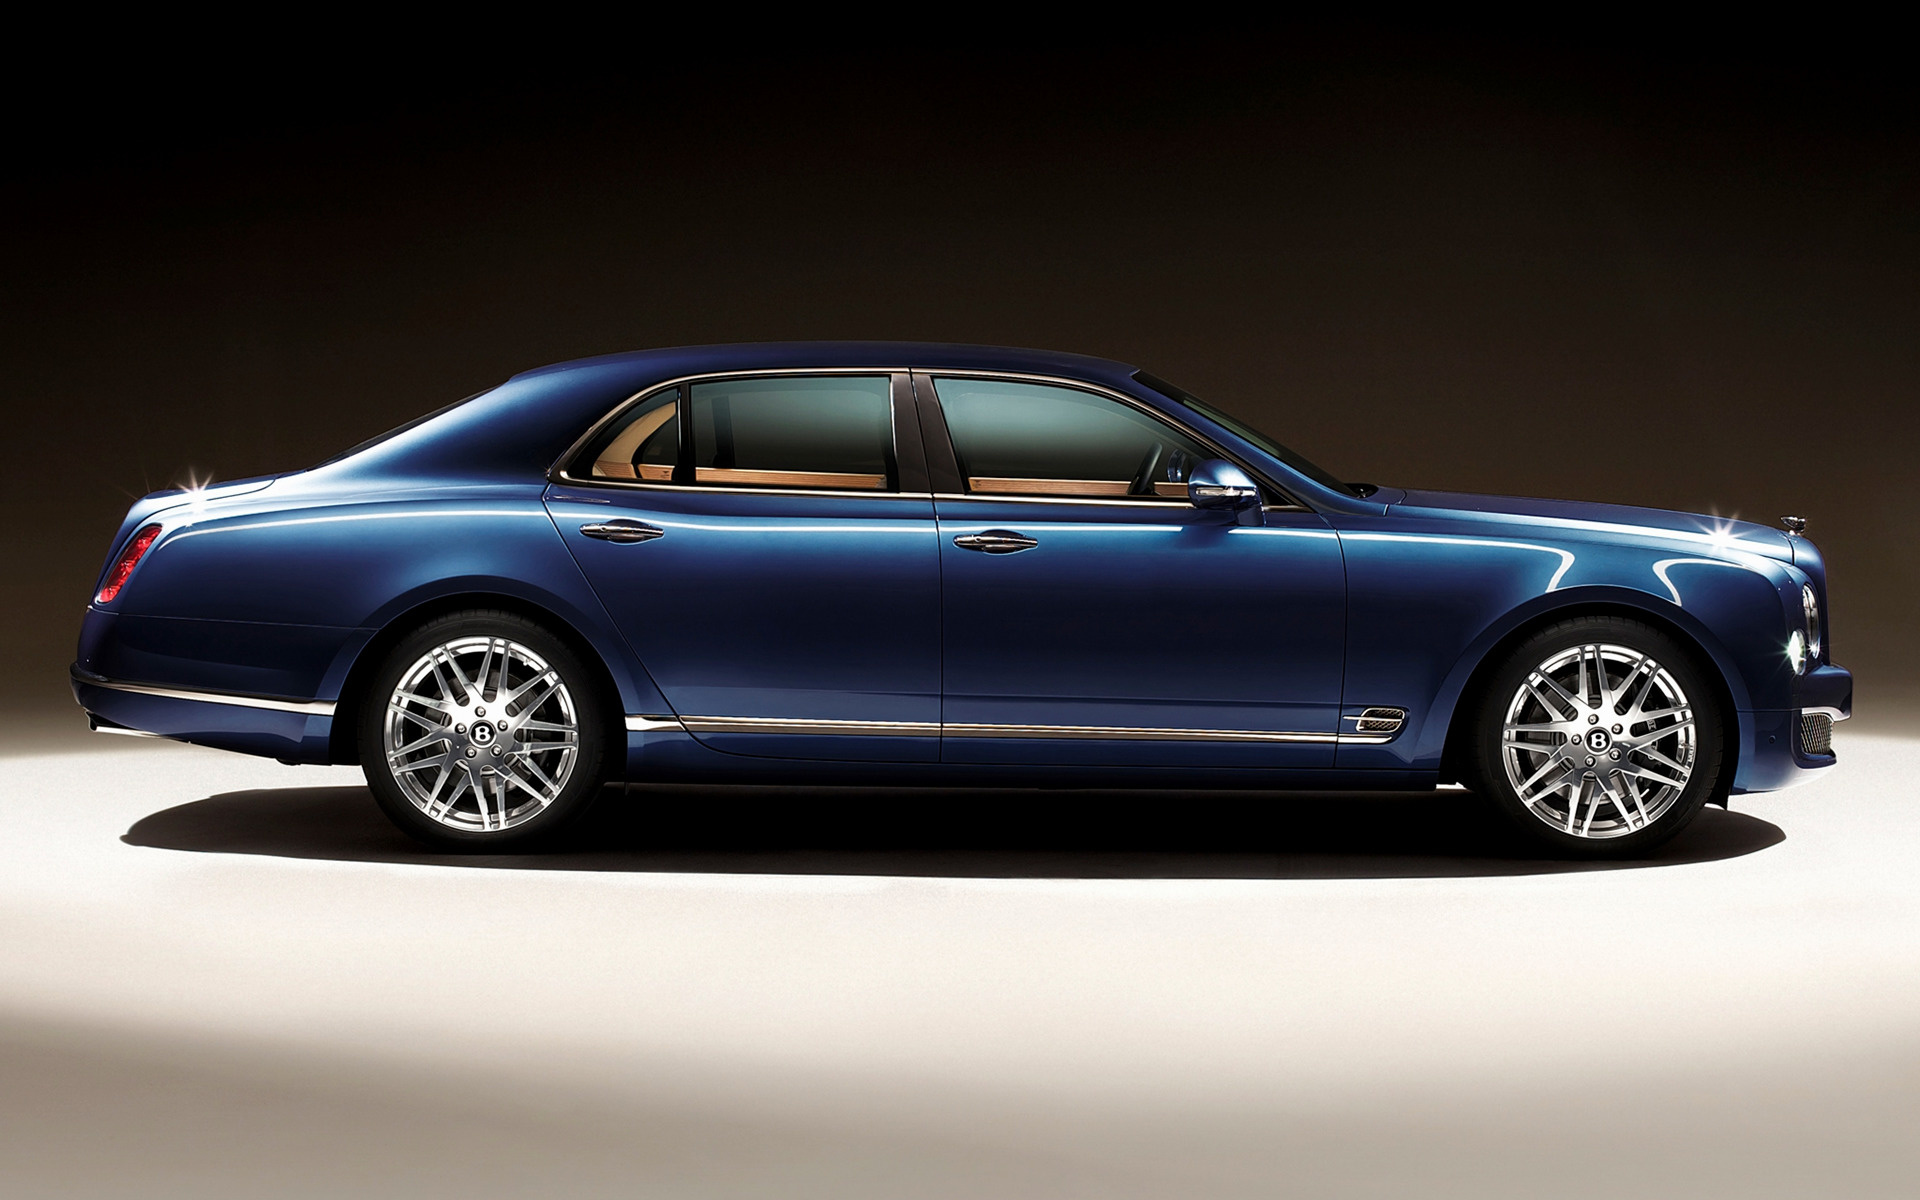 Bentley Mulsanne Executive Interior (2012) Wallpapers and HD Images ...